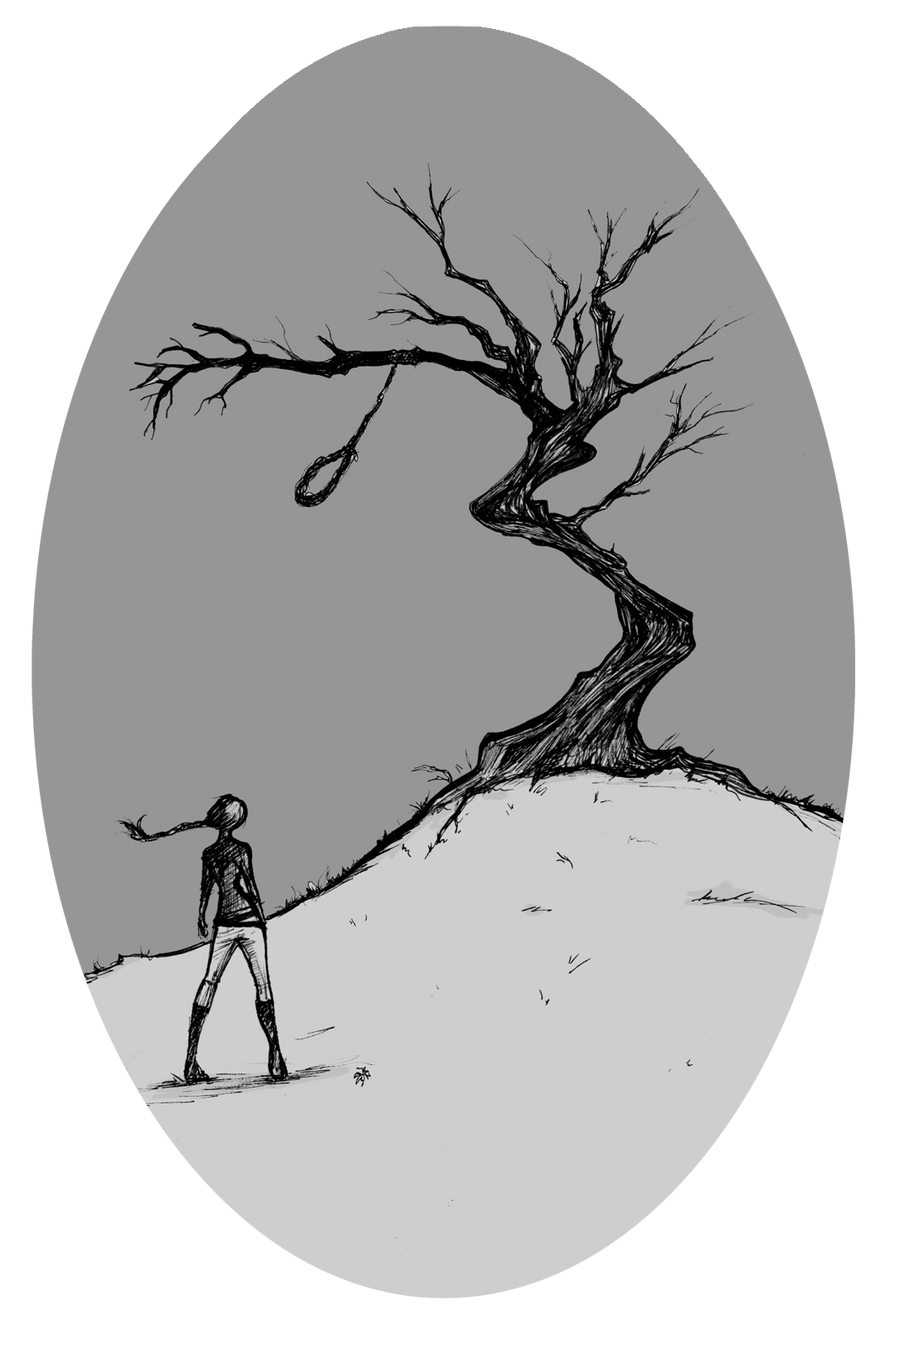 The Hanging Tree by Ratgirlstudios